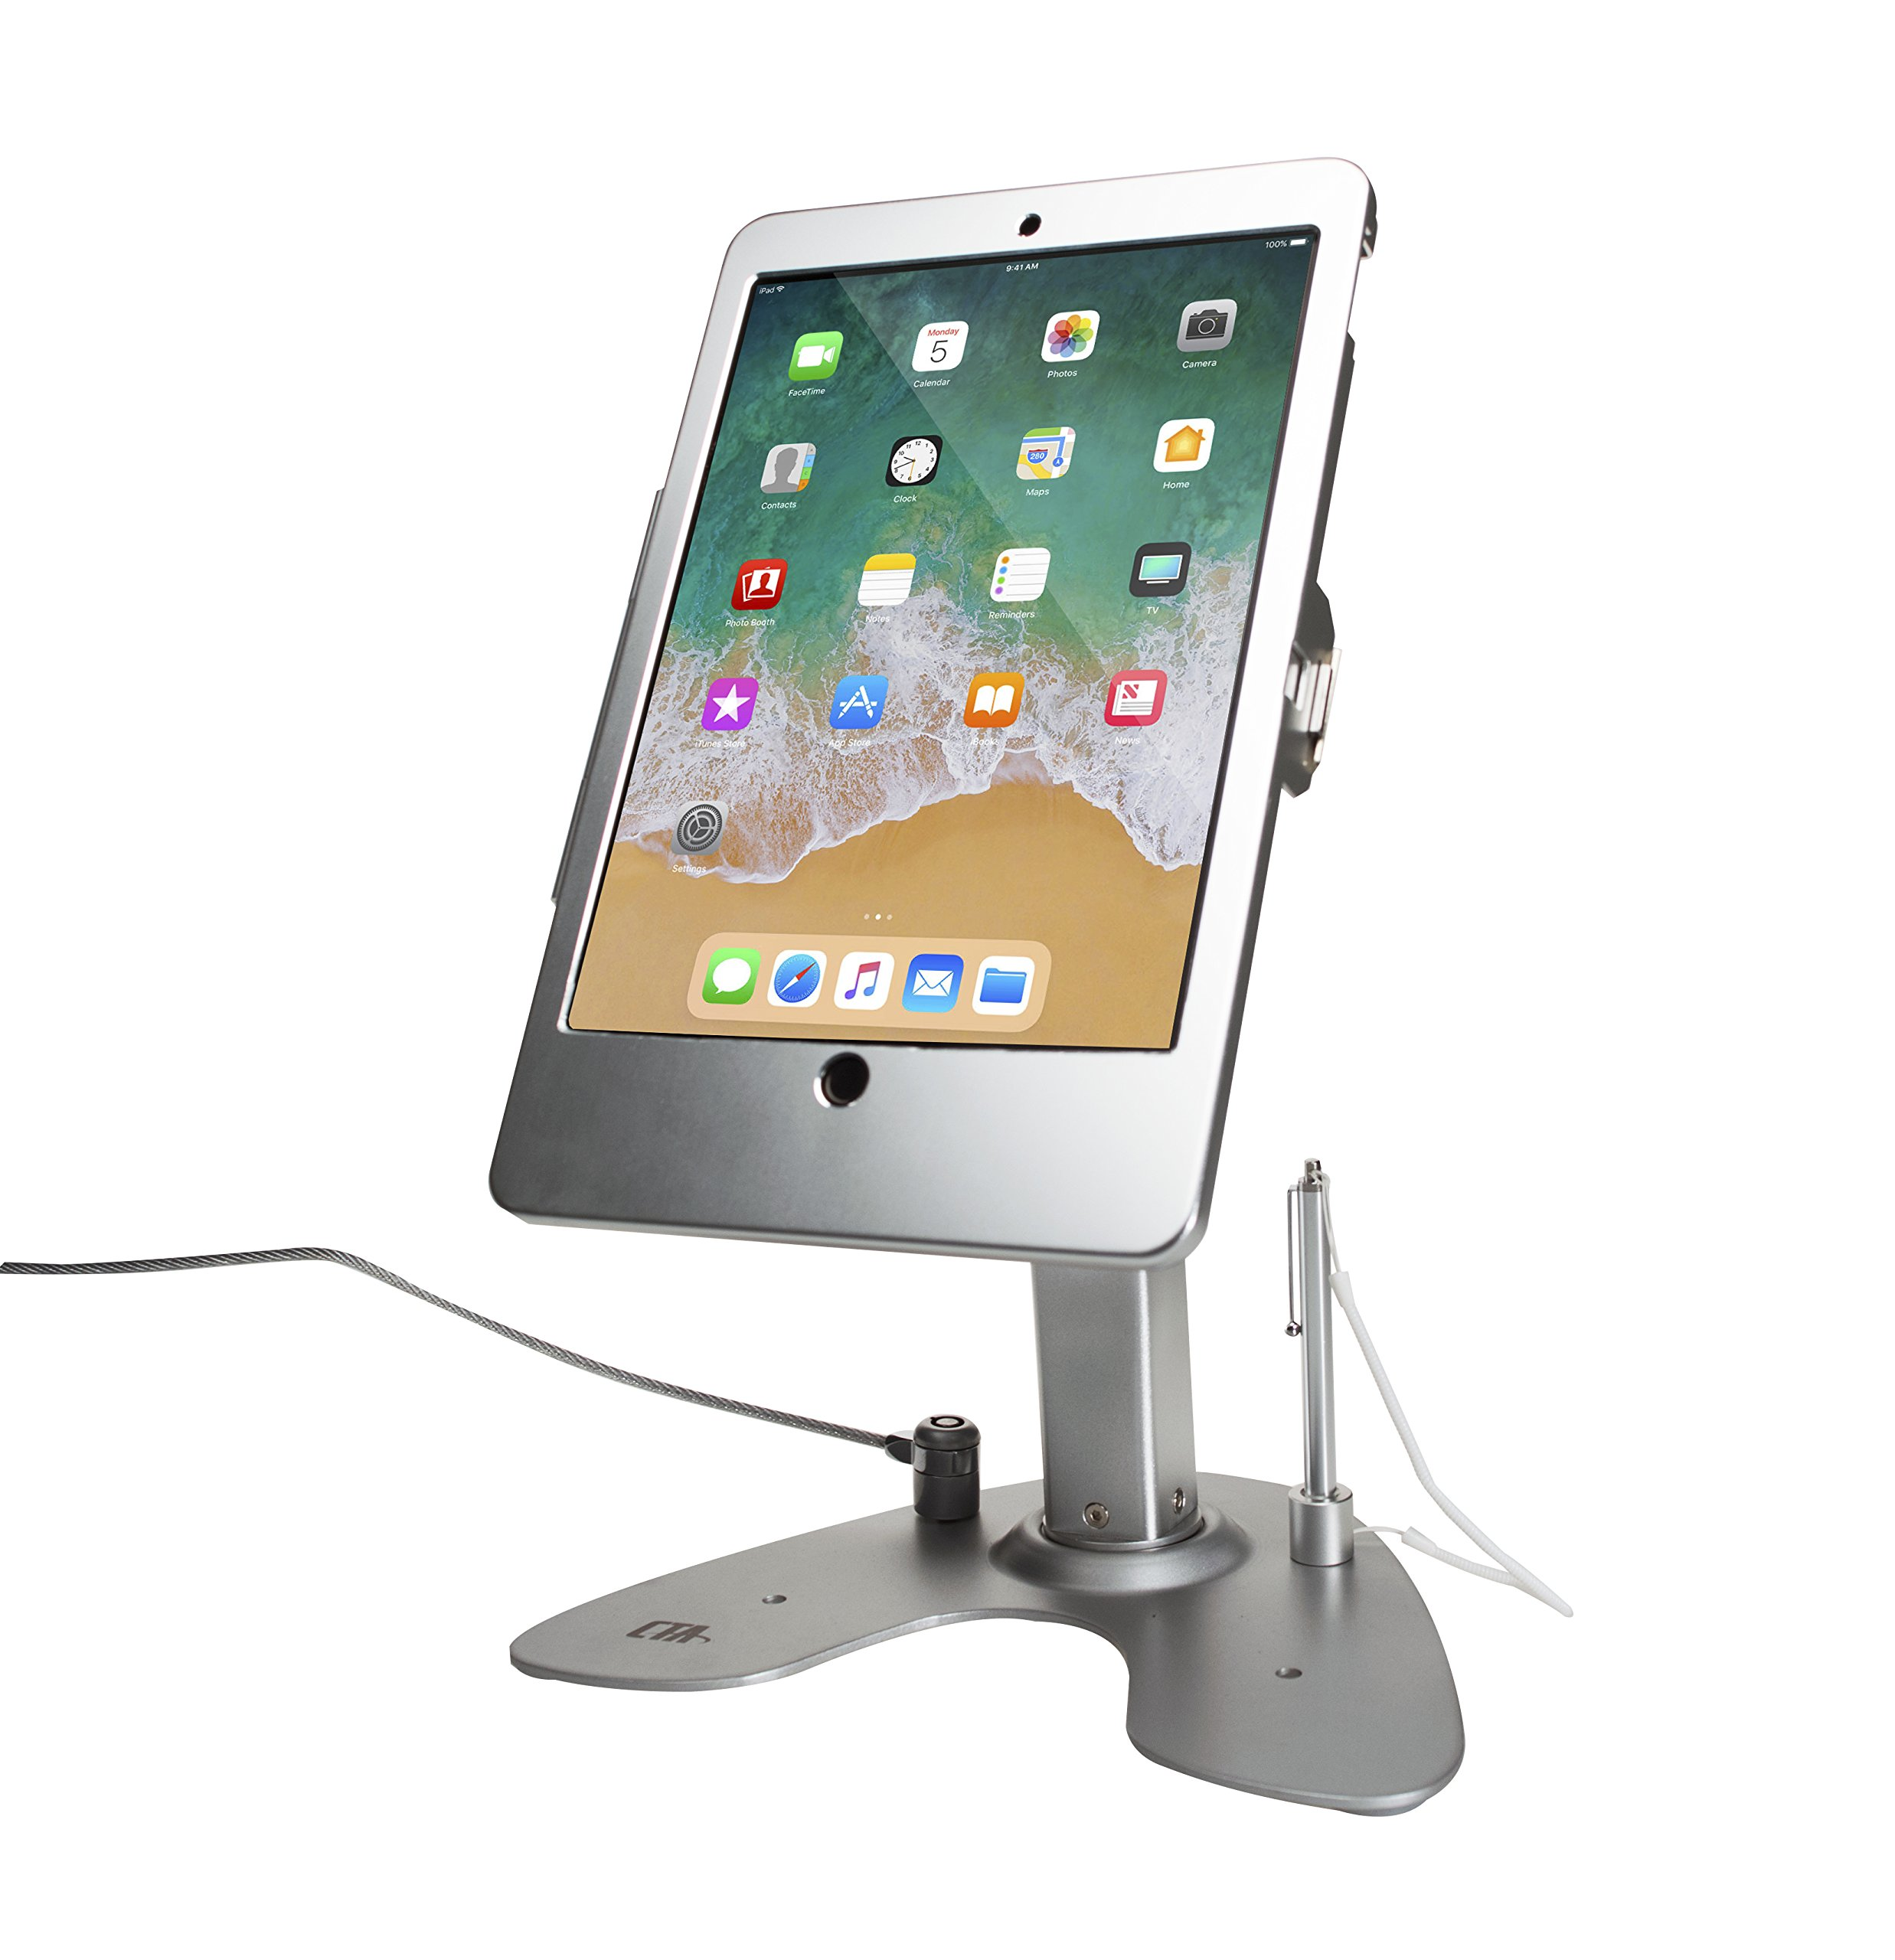 CTA Digital PAD-ASKT Dual Security Kiosk Stand with Locking Case and Cable for iPad Pro 10.5